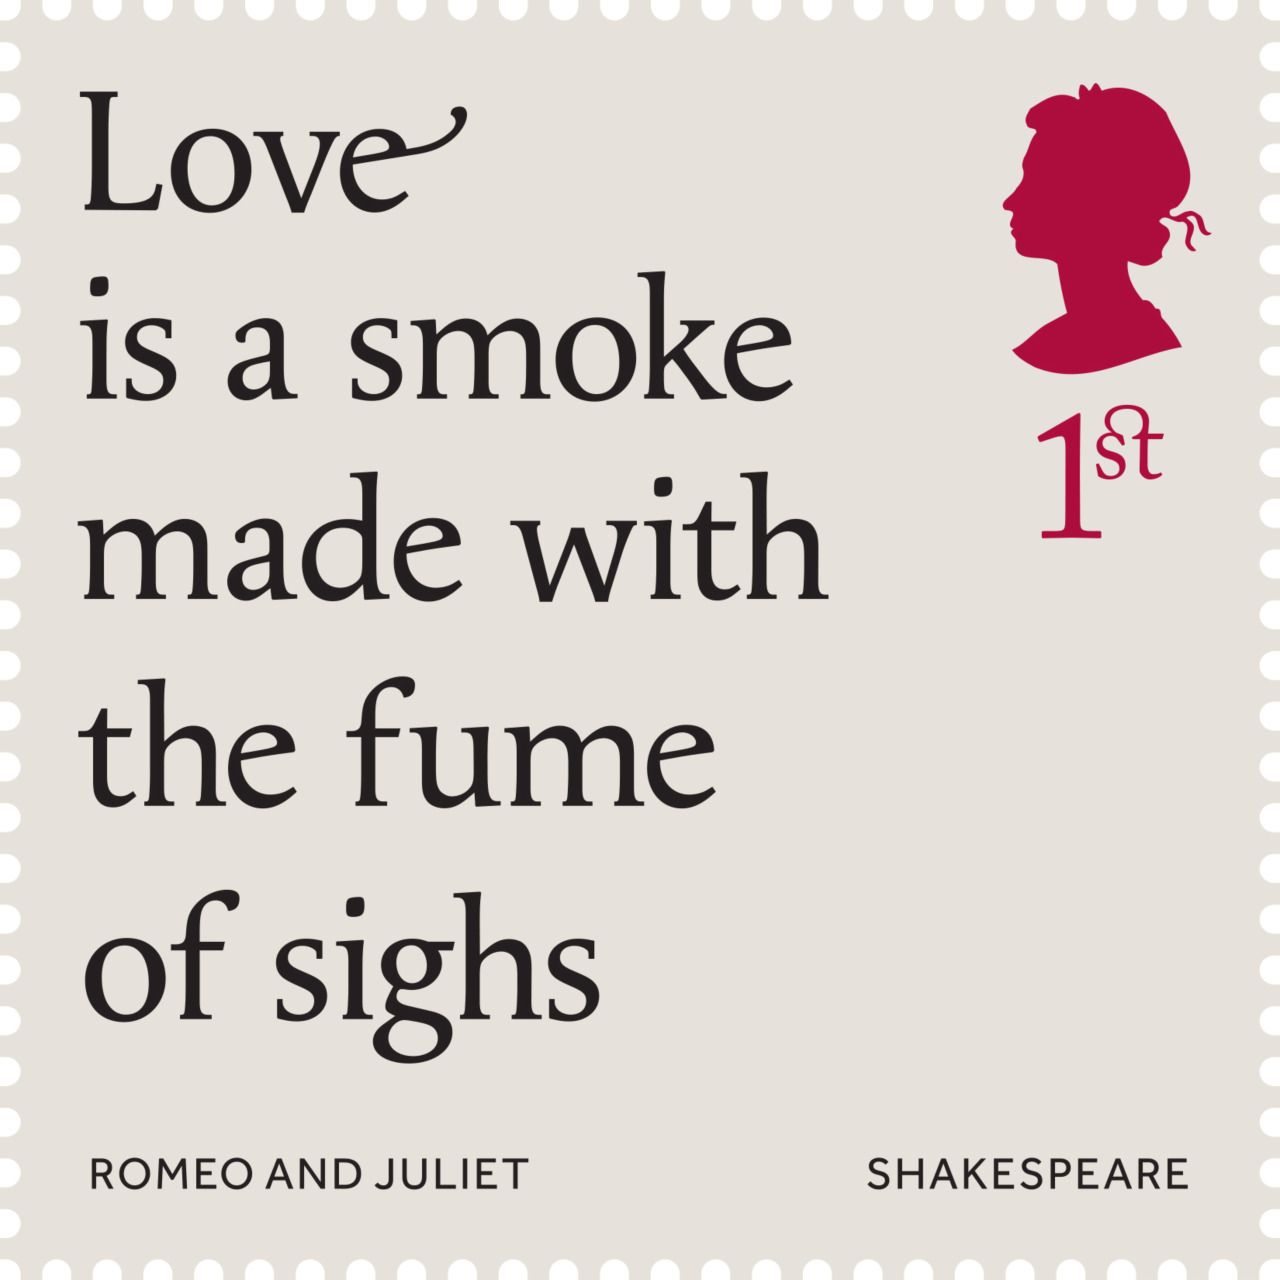 Shakespeare Quotes About Death Quote From Romeo And Juliet Featured On A Commemorative Stamp Set